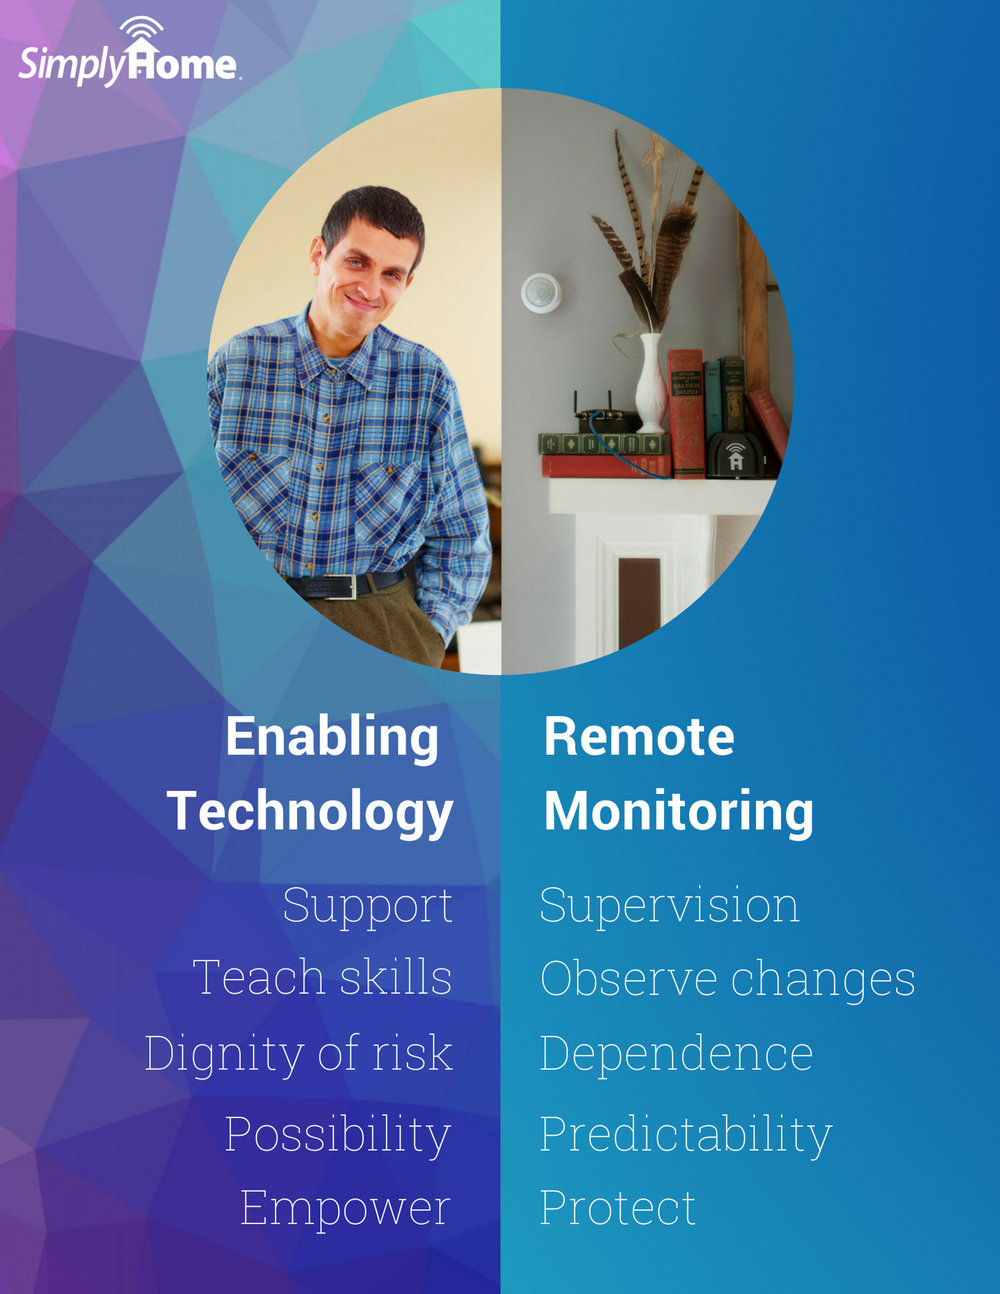 Enabling Technology and Remote Monitoring - Large graphic.jpg